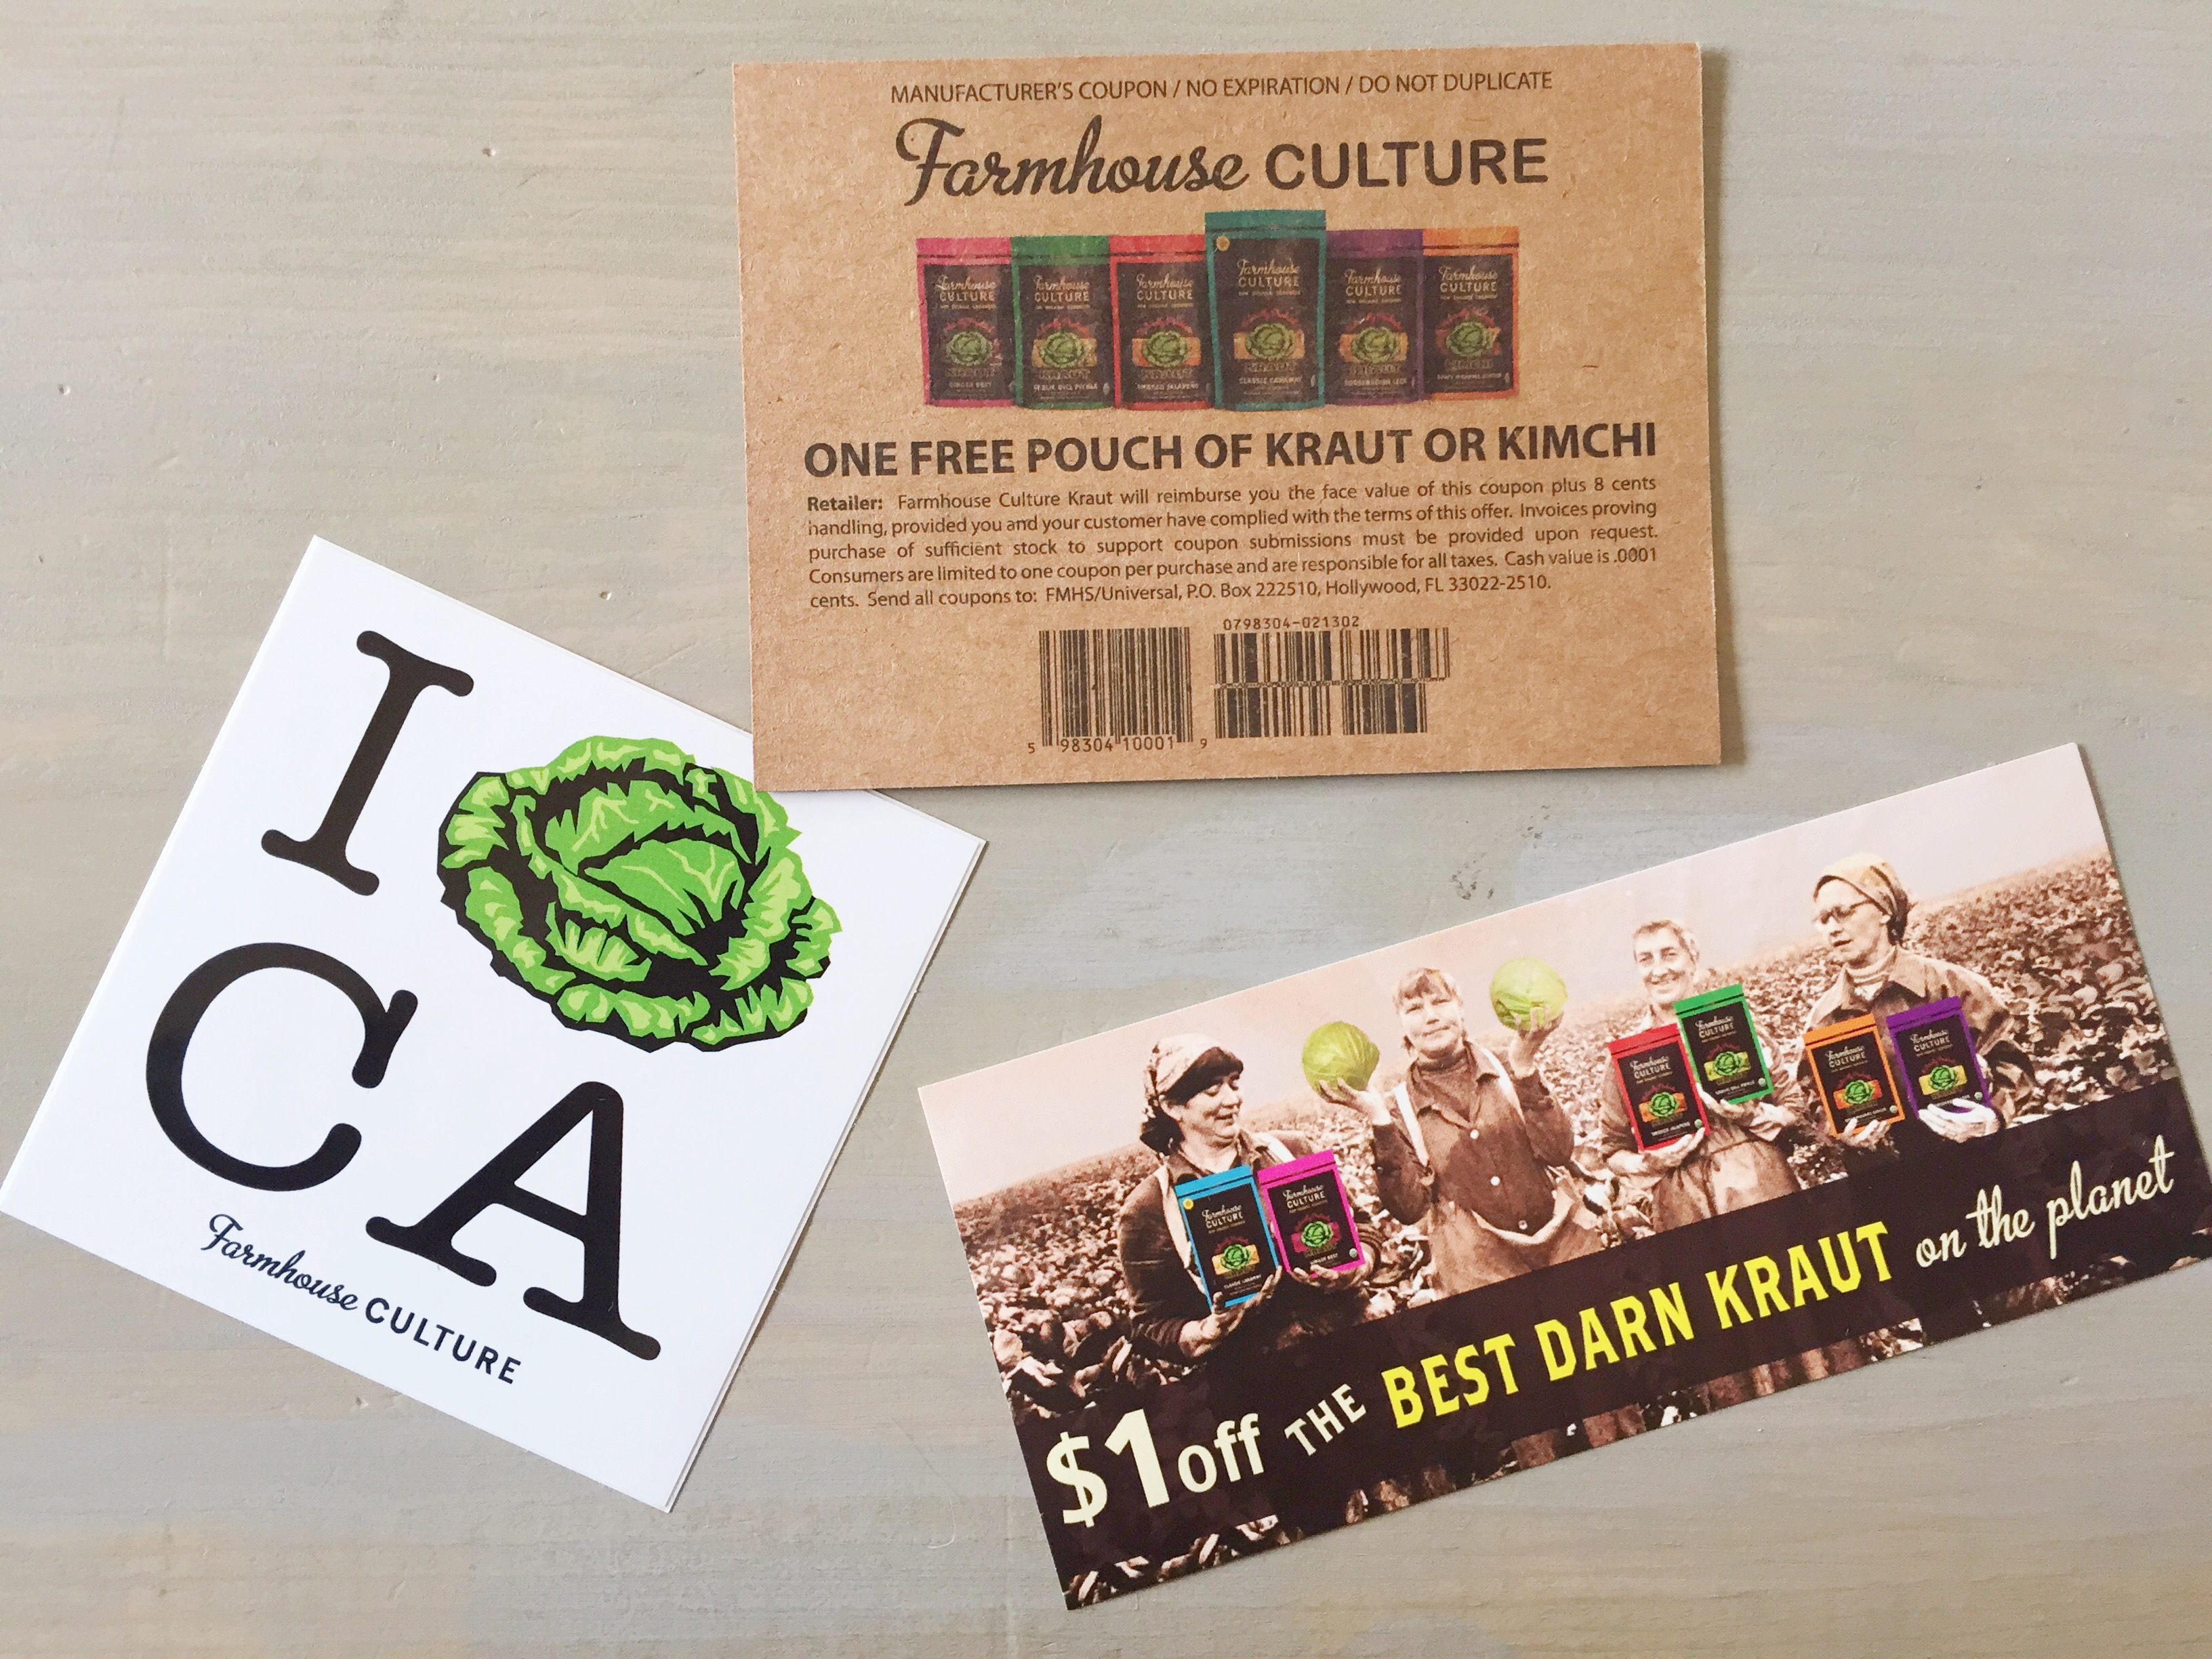 Weekend Giveaway Farmhouse Culture Saurkraut